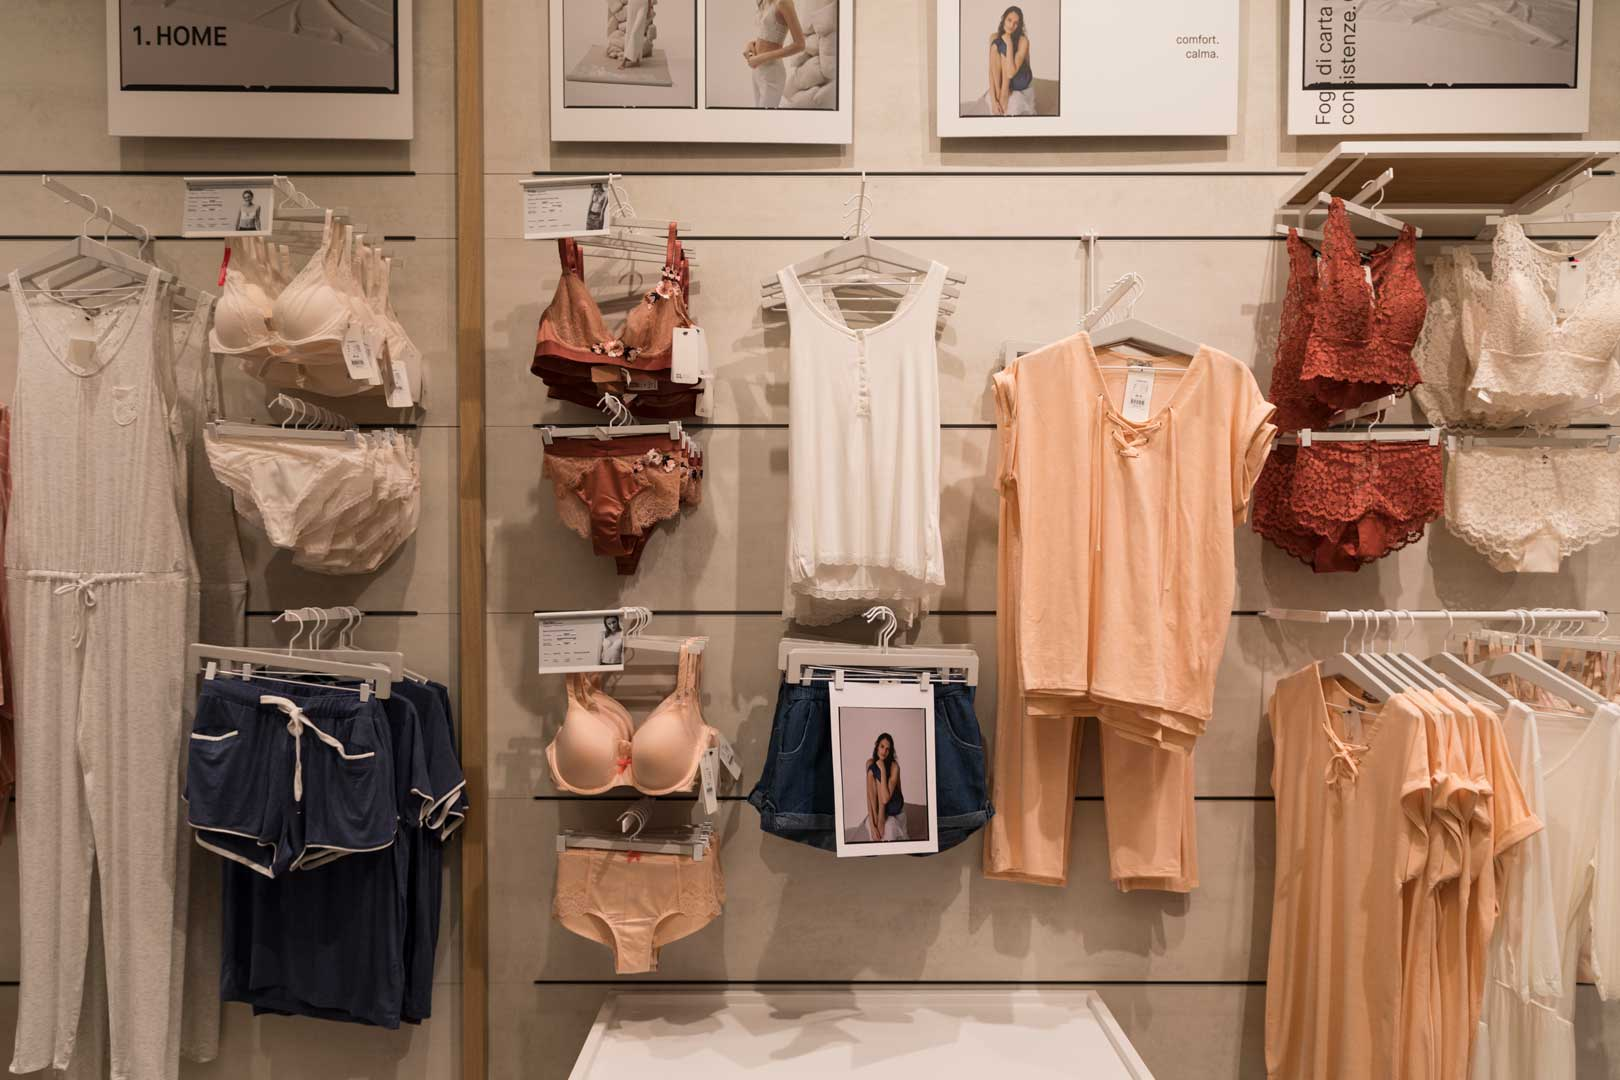 the lingerie bridal members giveaway pin closet enter of littlest your for bhldn party